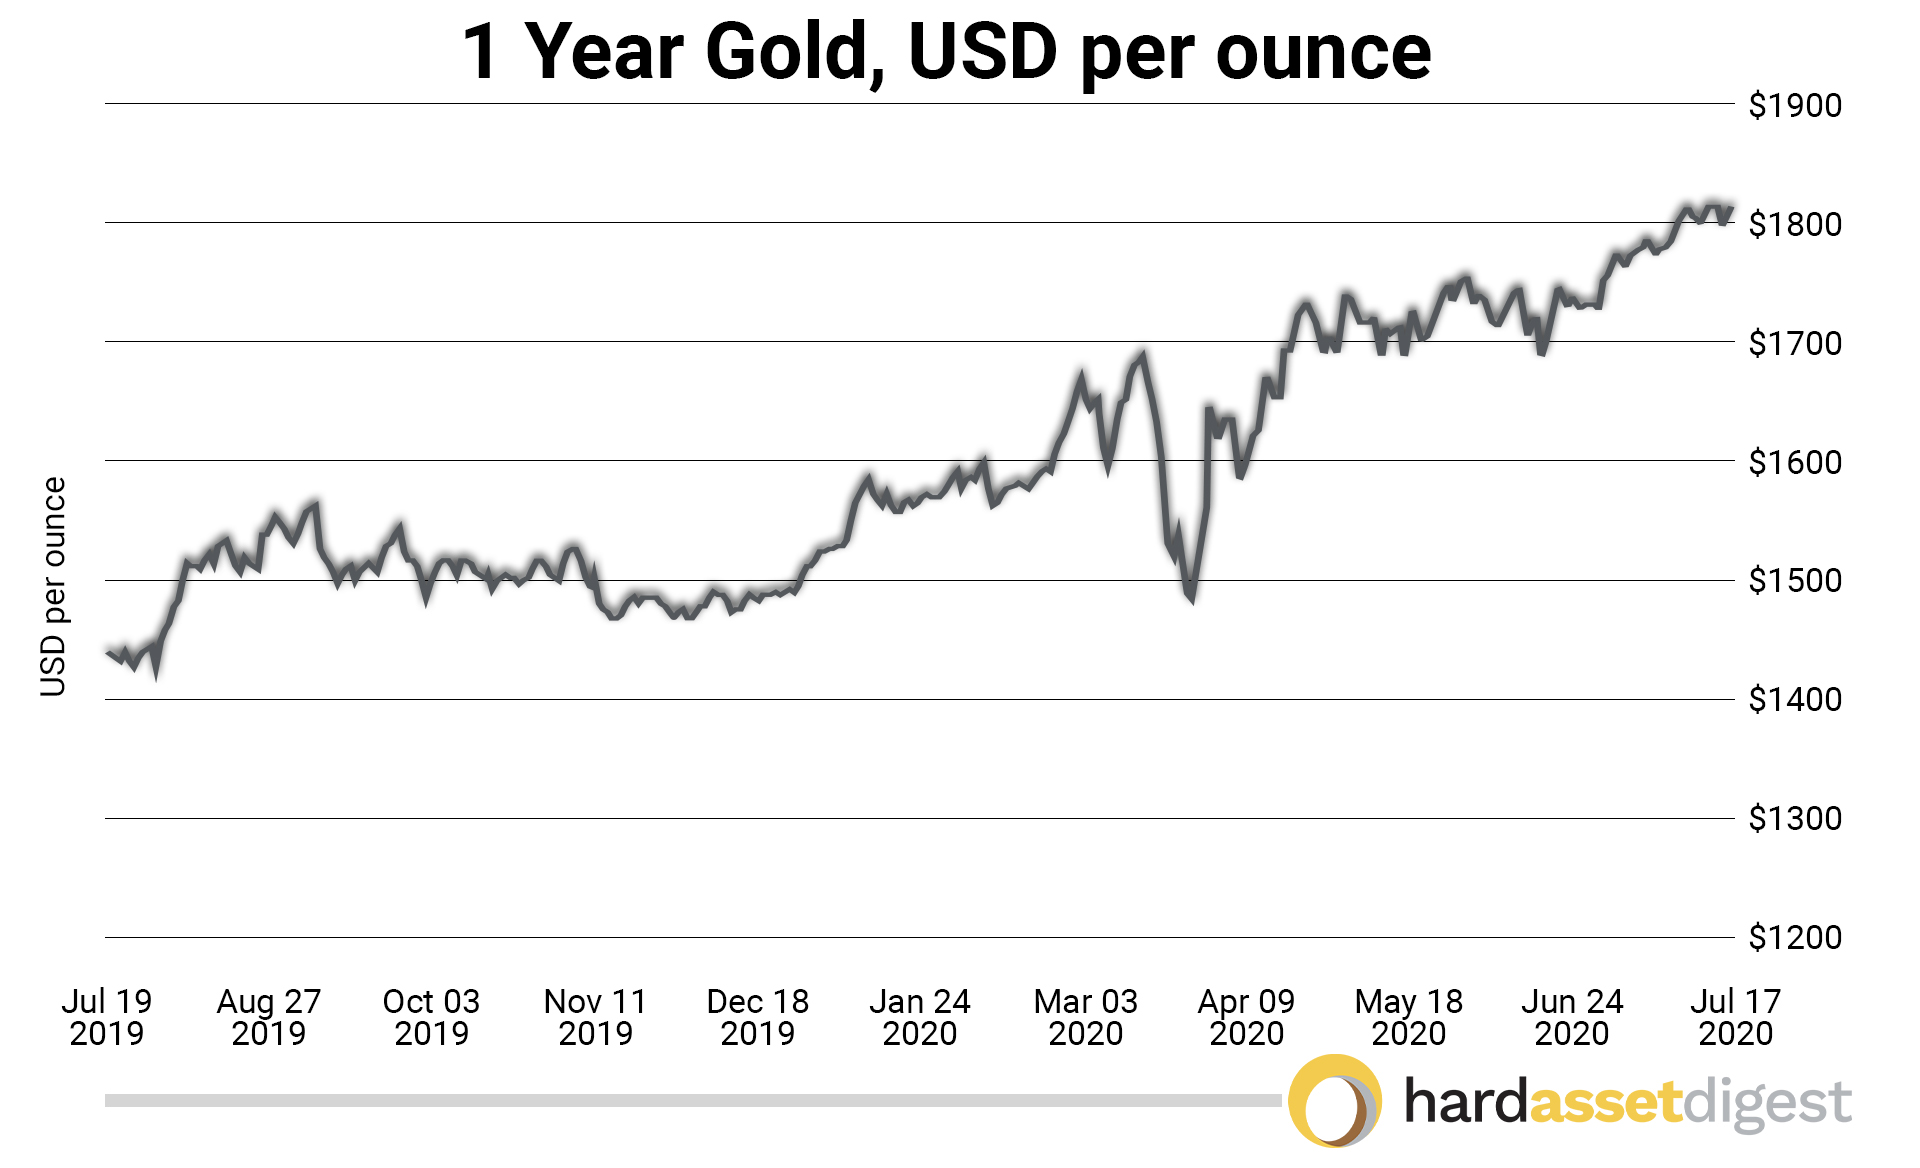 1year-gold-usd-per-ounce